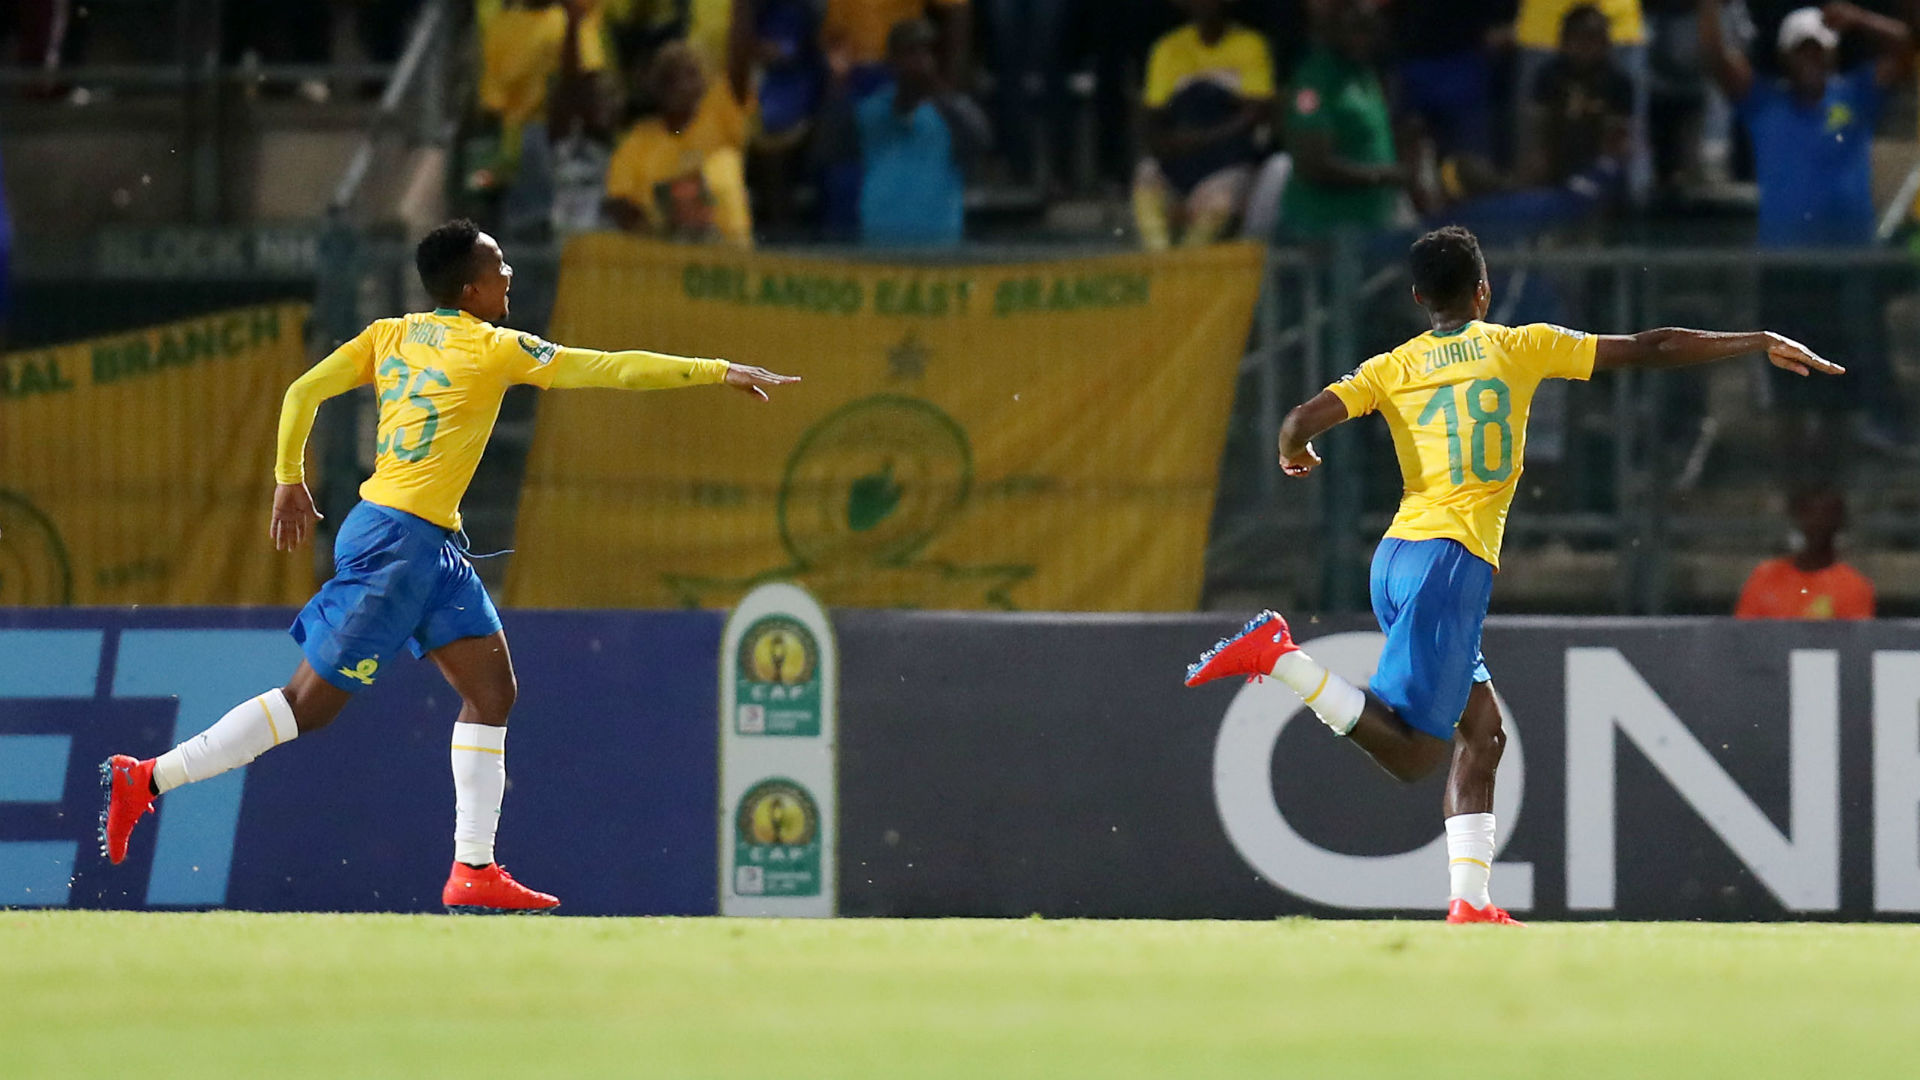 Mamelodi Sundowns v Lobi Stars, March 2019